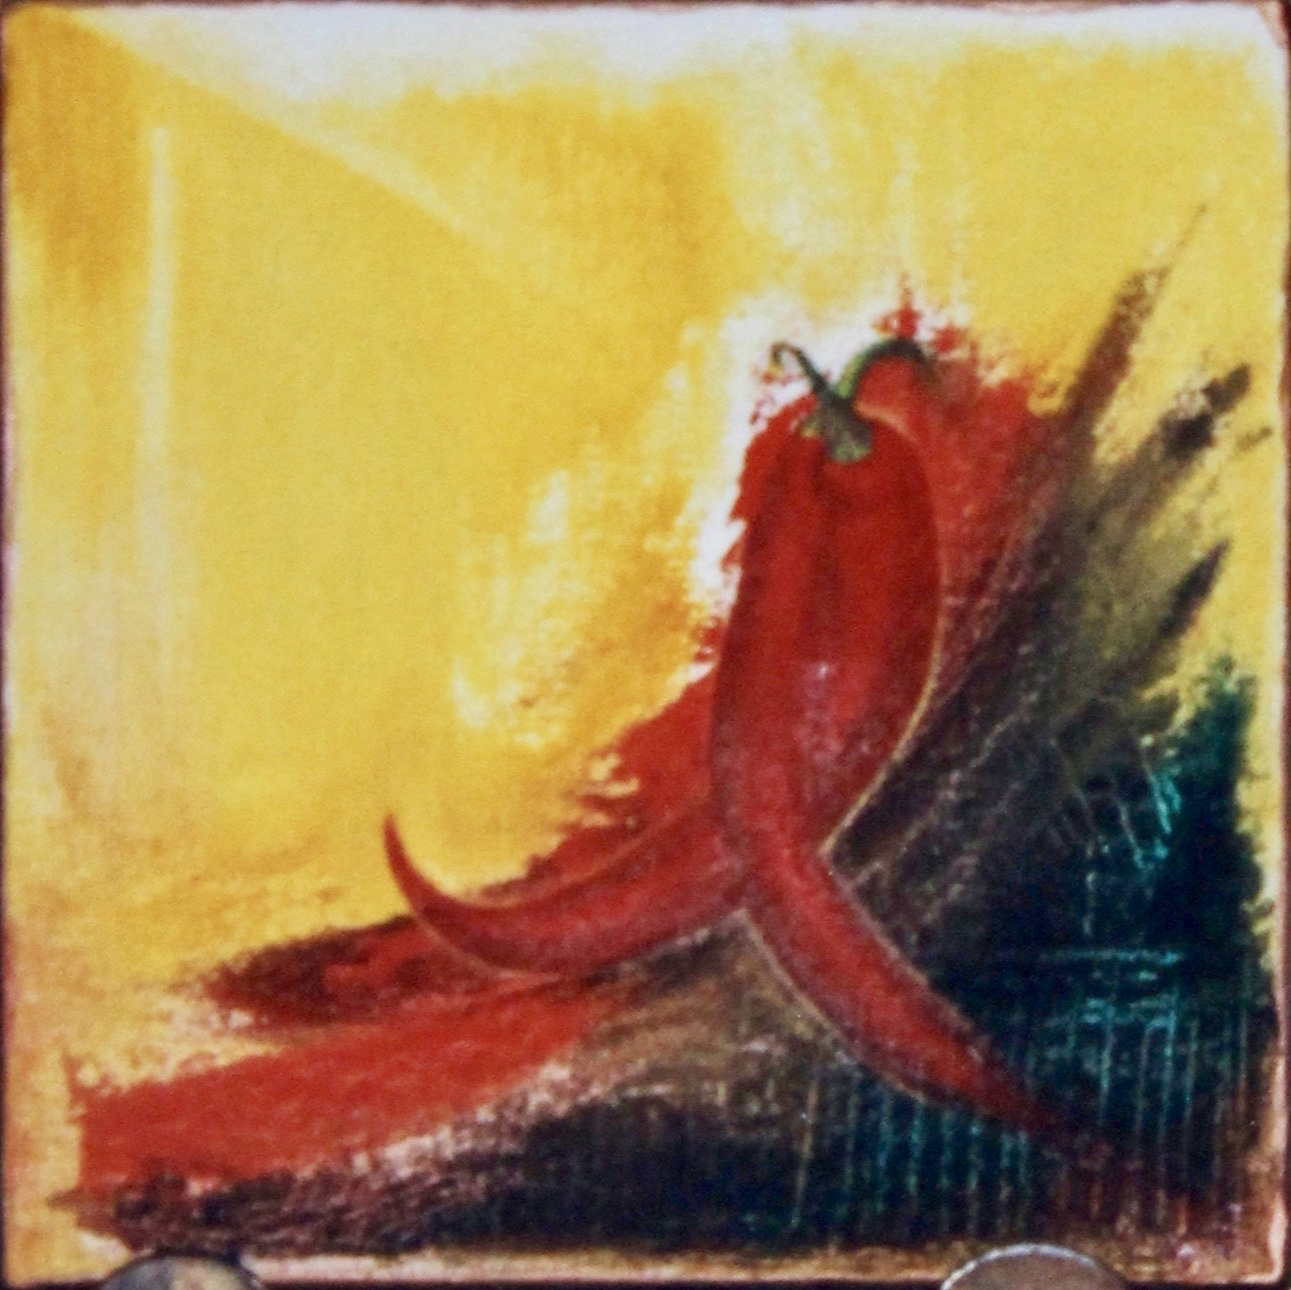 Peppered Passion -  1997 oil on canvas 30cm x 30cm (sold)